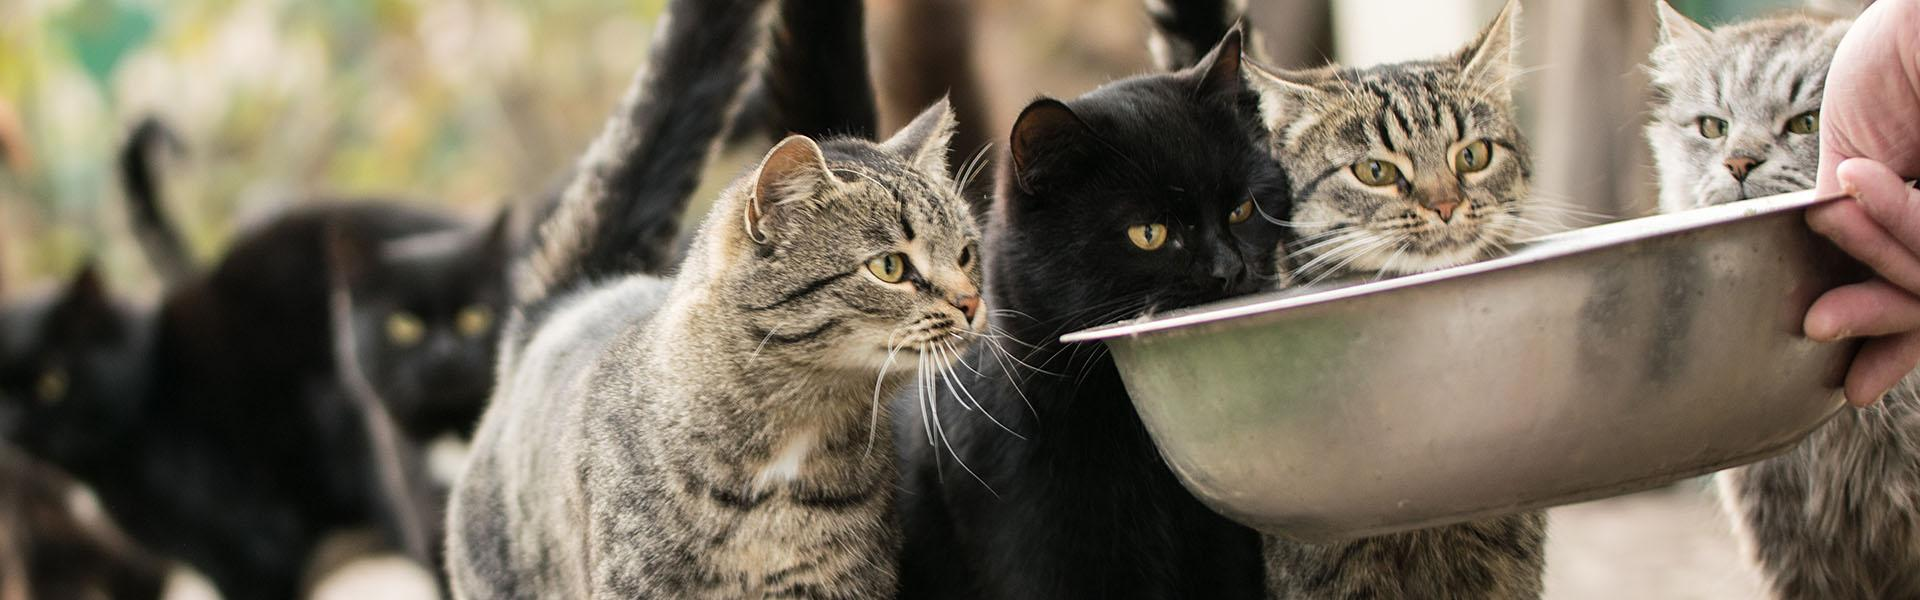 Cats wait to be fed from a bowl